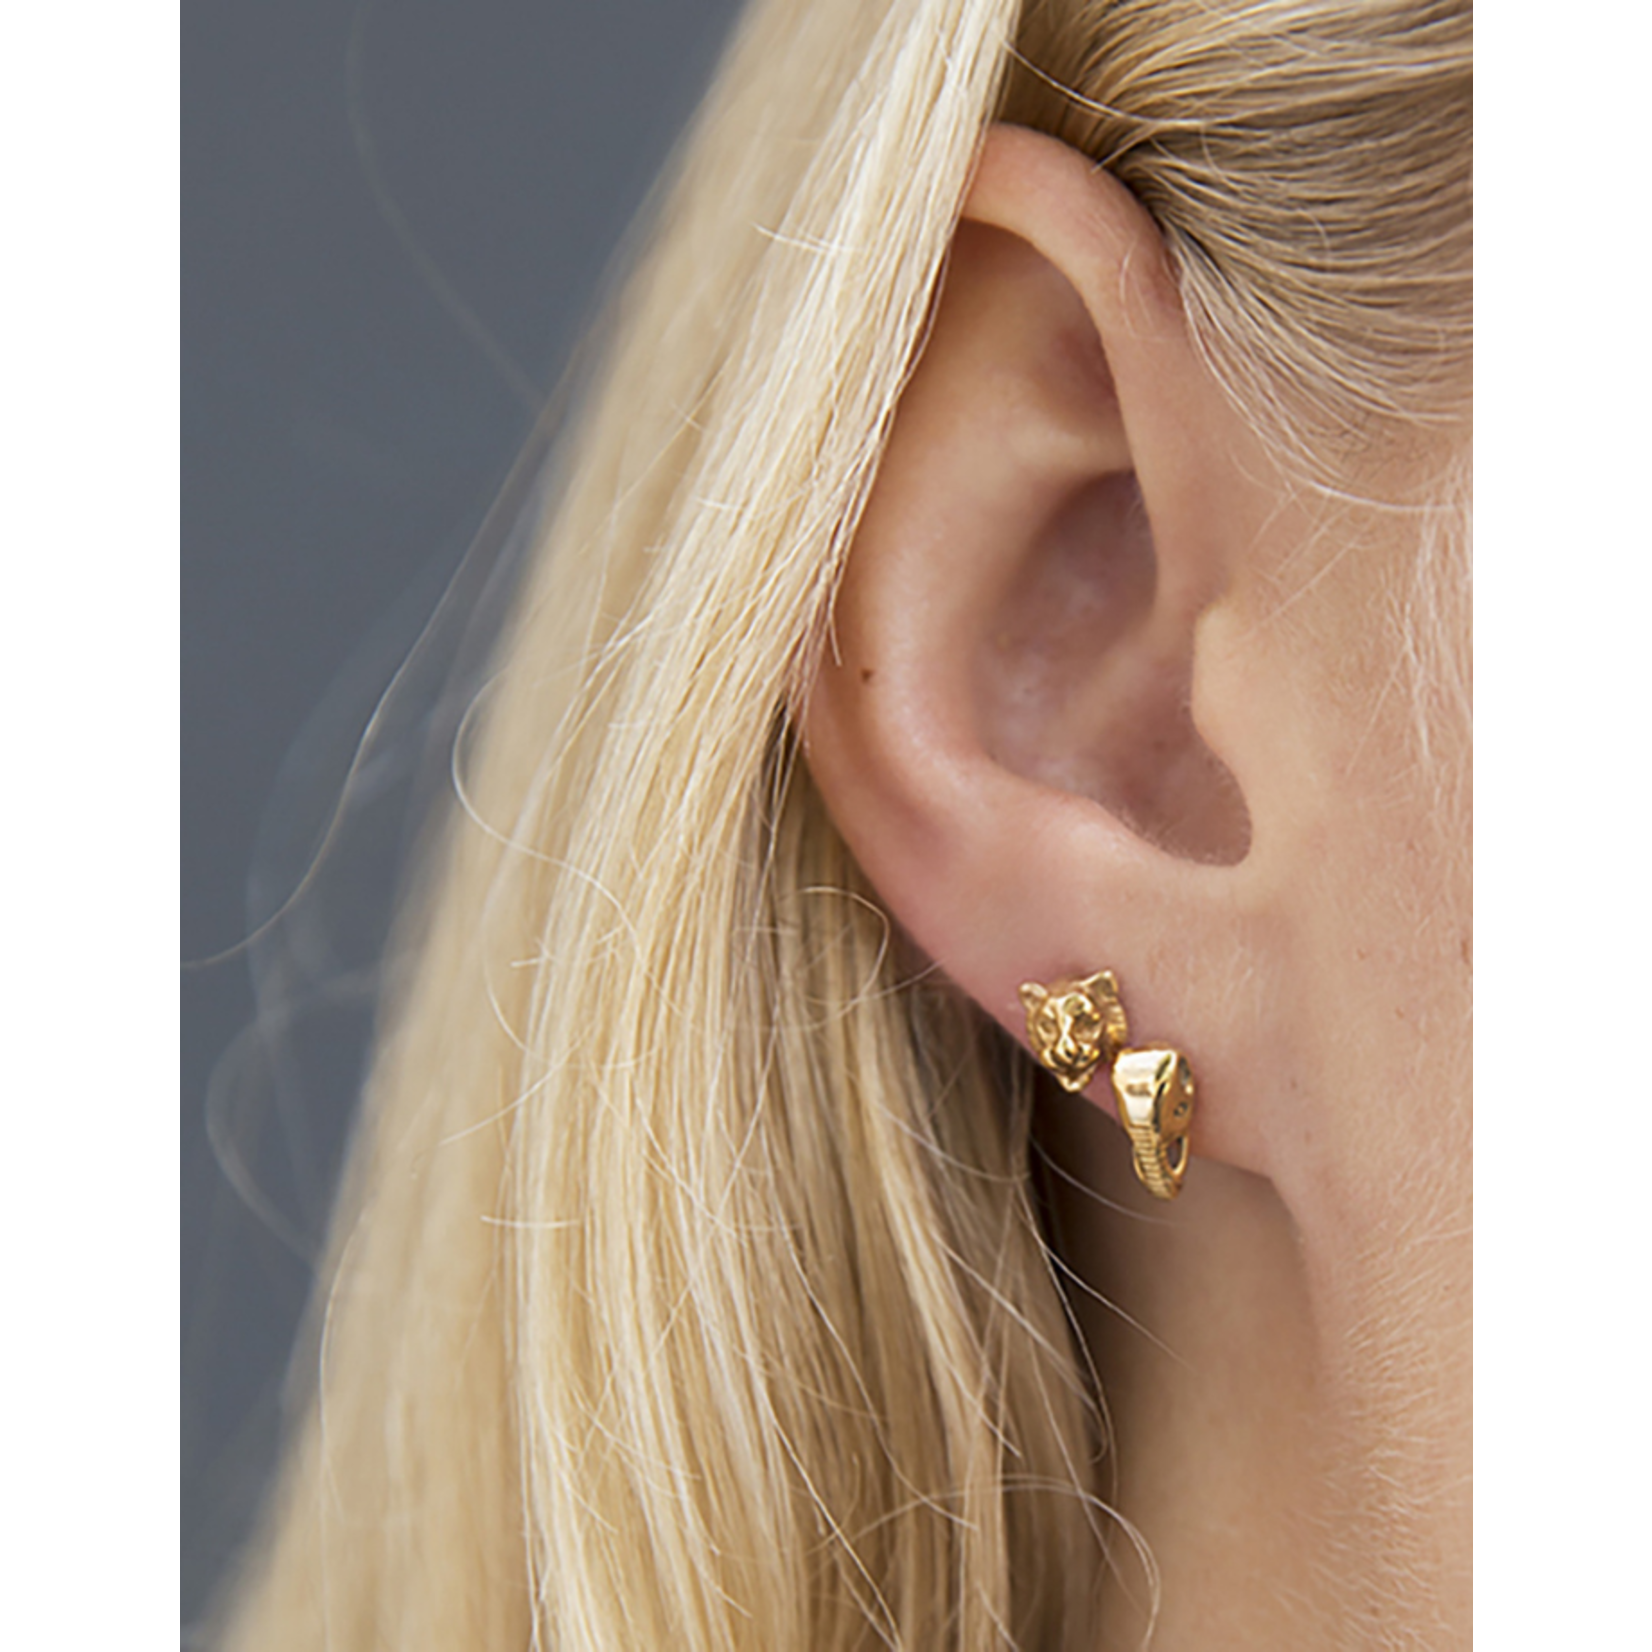 charlotte wooning charlotte wooning - earrings animal attraction